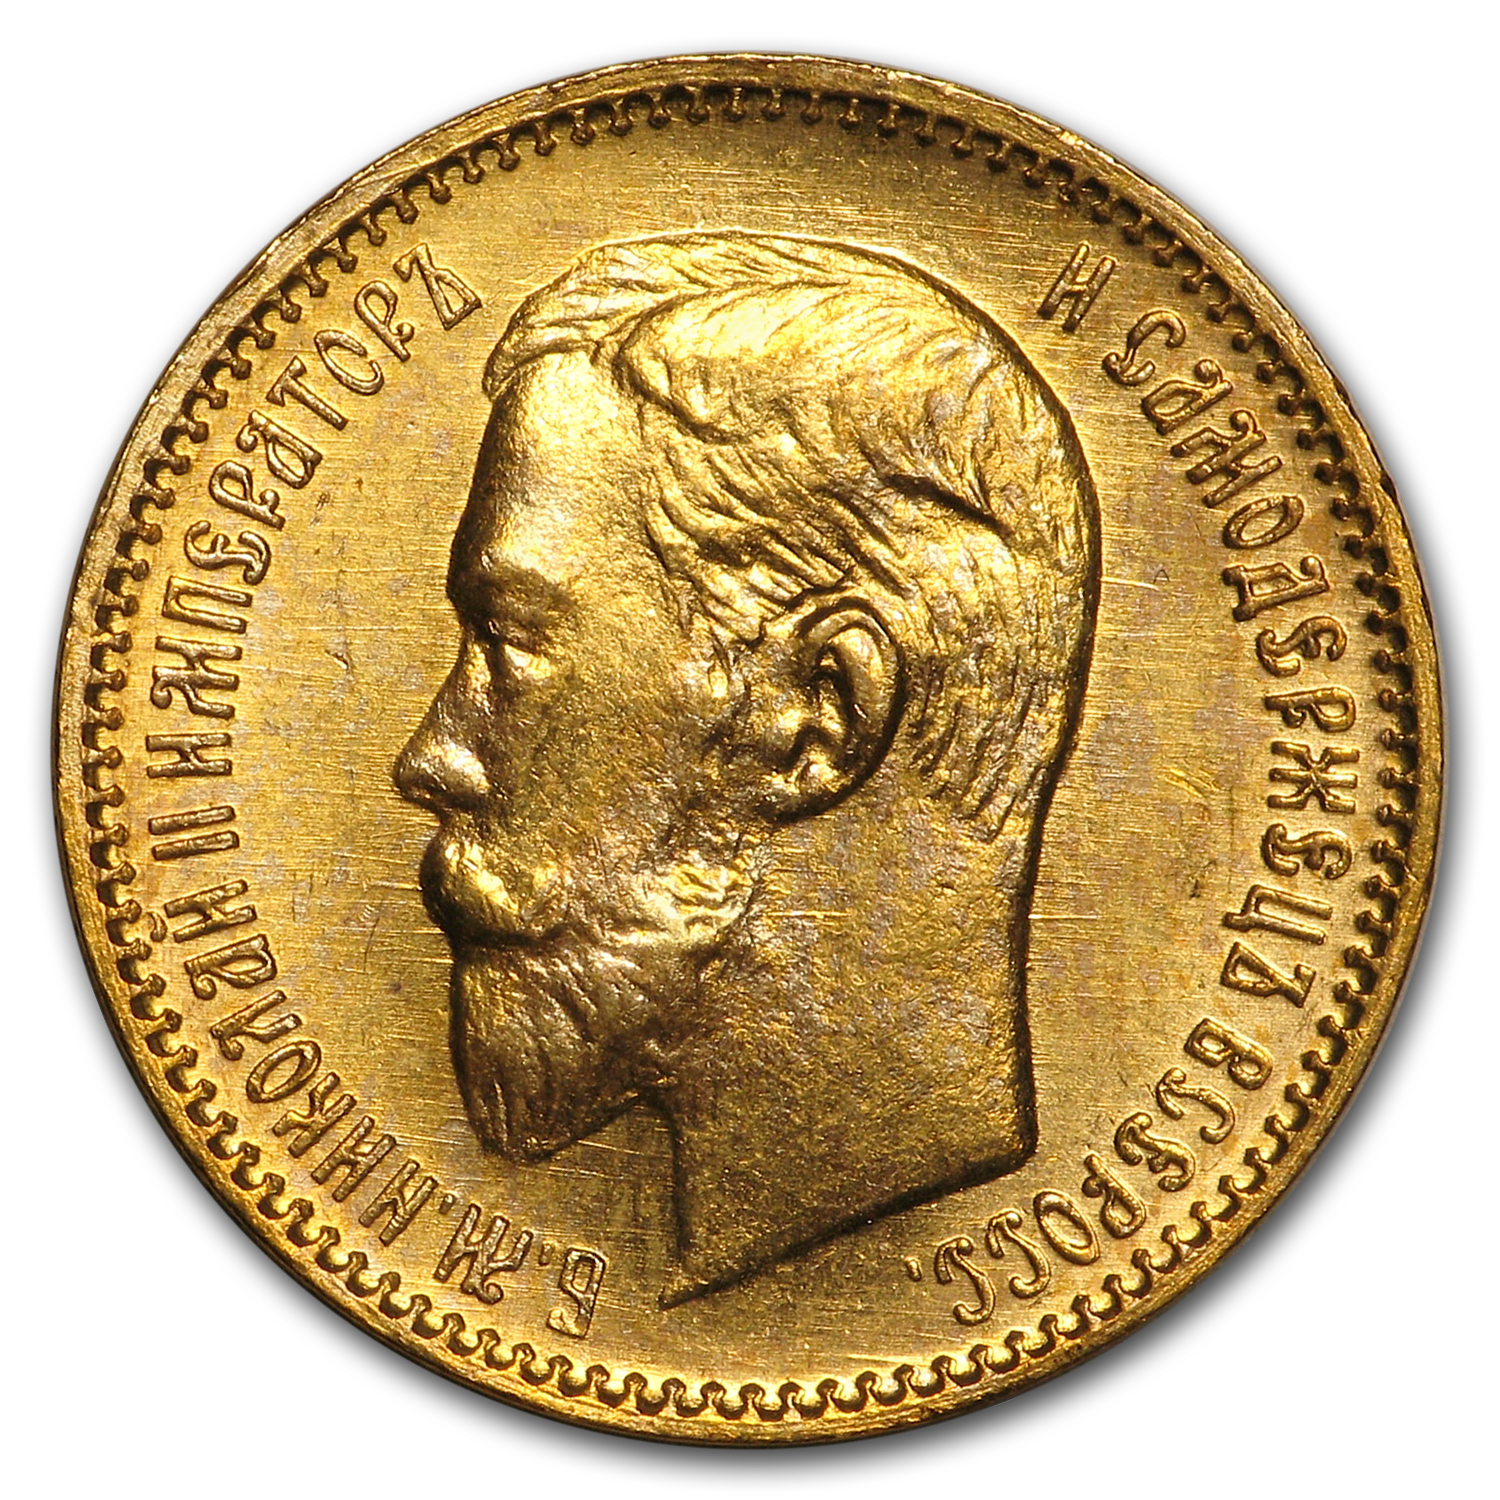 Russia 1904 5 Roubles Gold Coin (Brilliant Uncirculated)